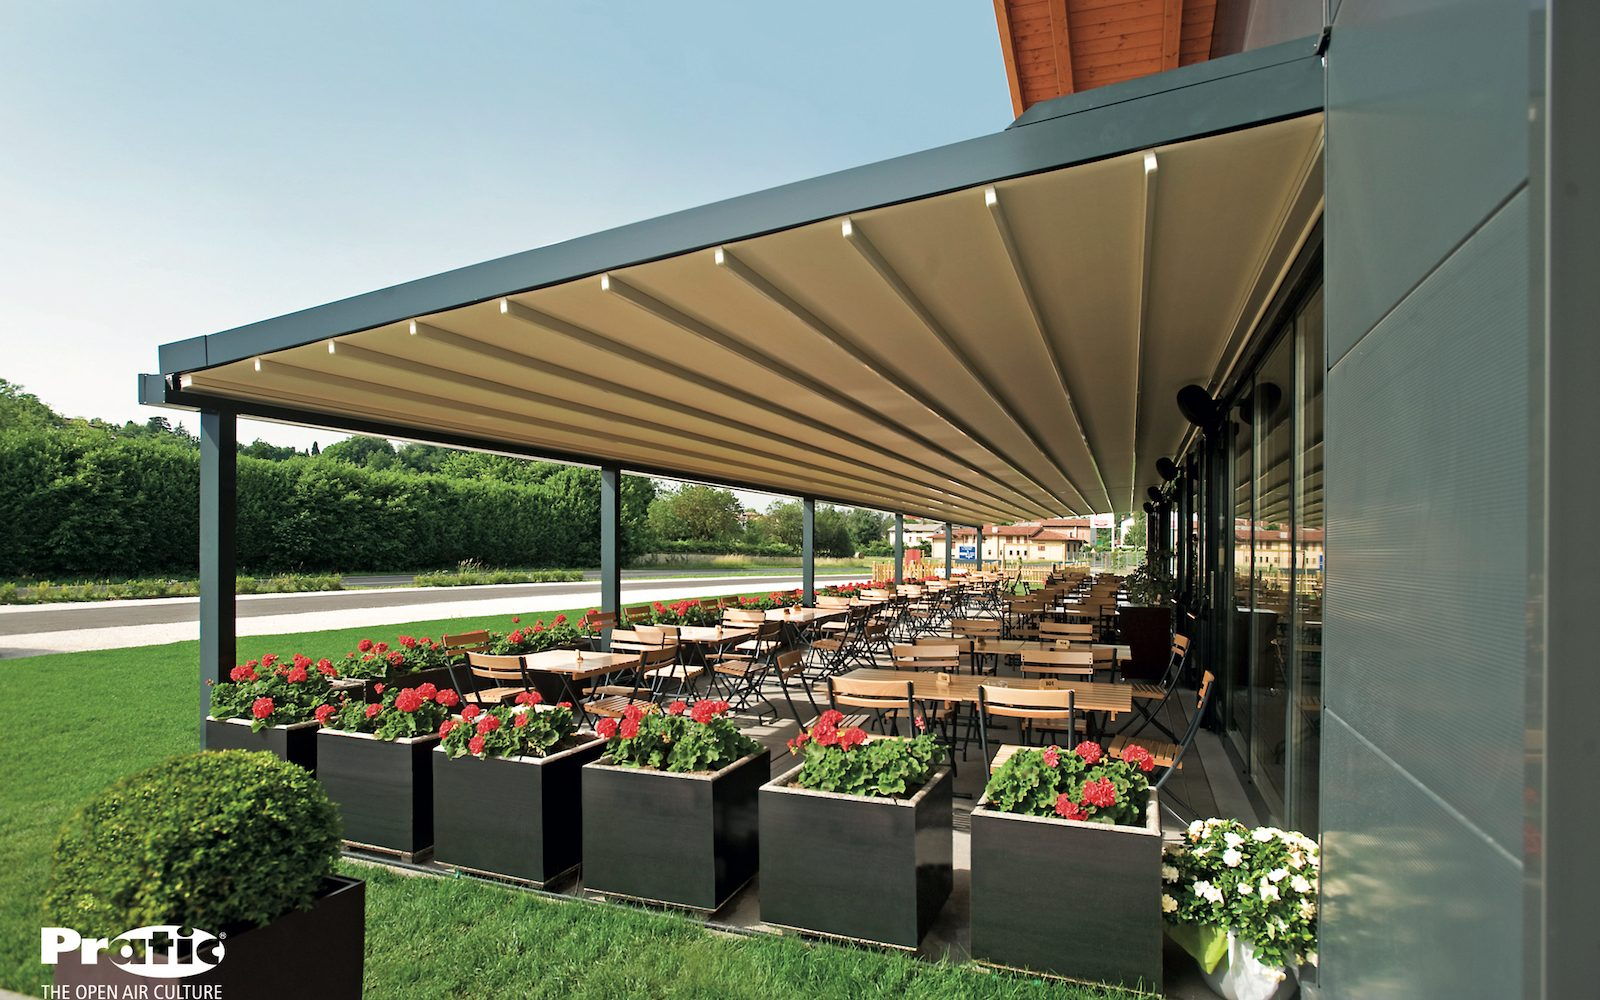 Restaurant pergola retractable roof closed